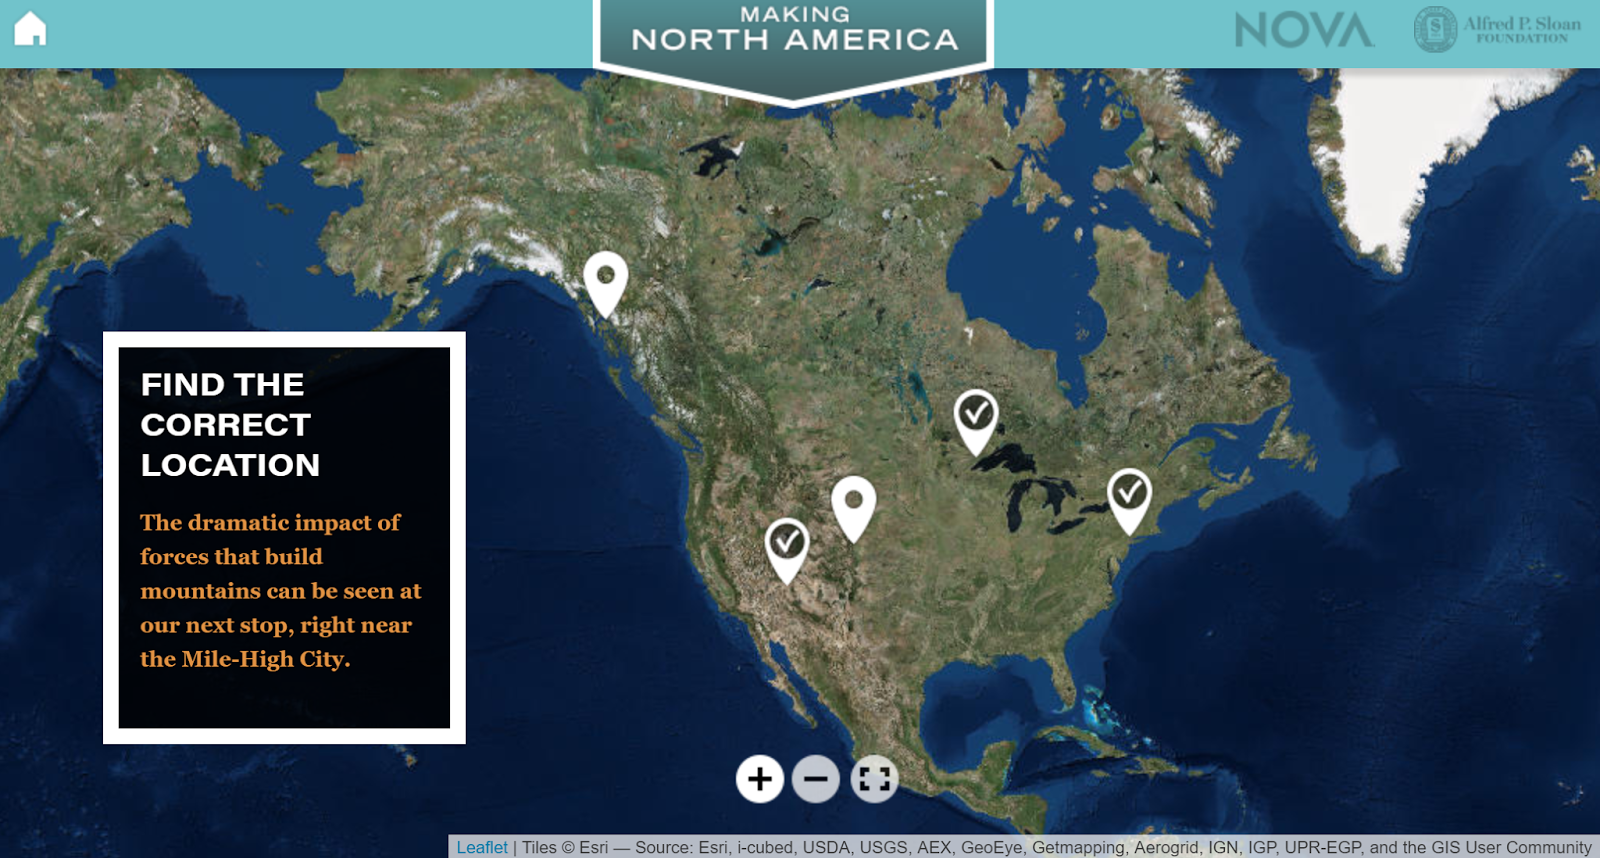 Free Technology For Teachers Making North America